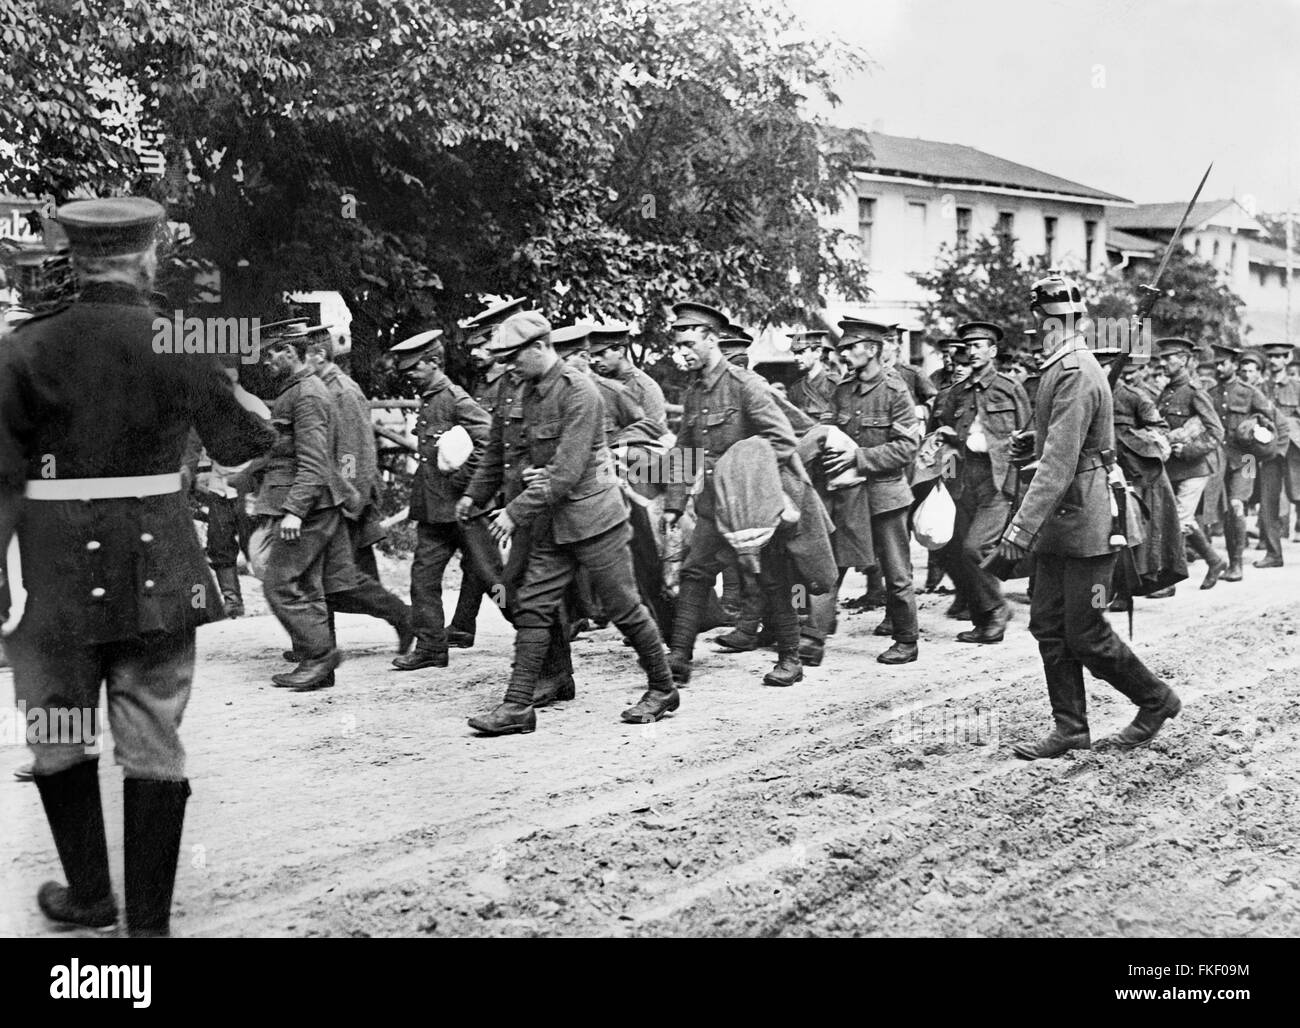 British prisoners in Germany being taken to prisoner-of-war camps after battles in the Somme during World War I. - Stock Image